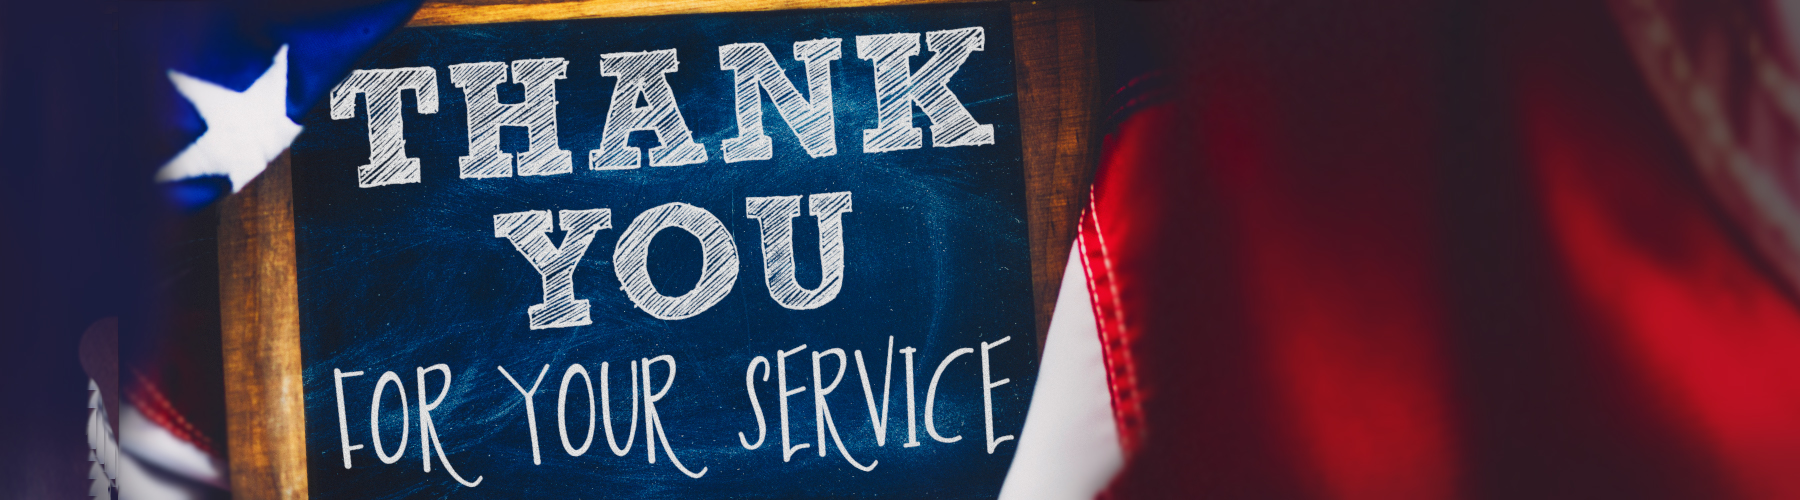 Thank you image for military services